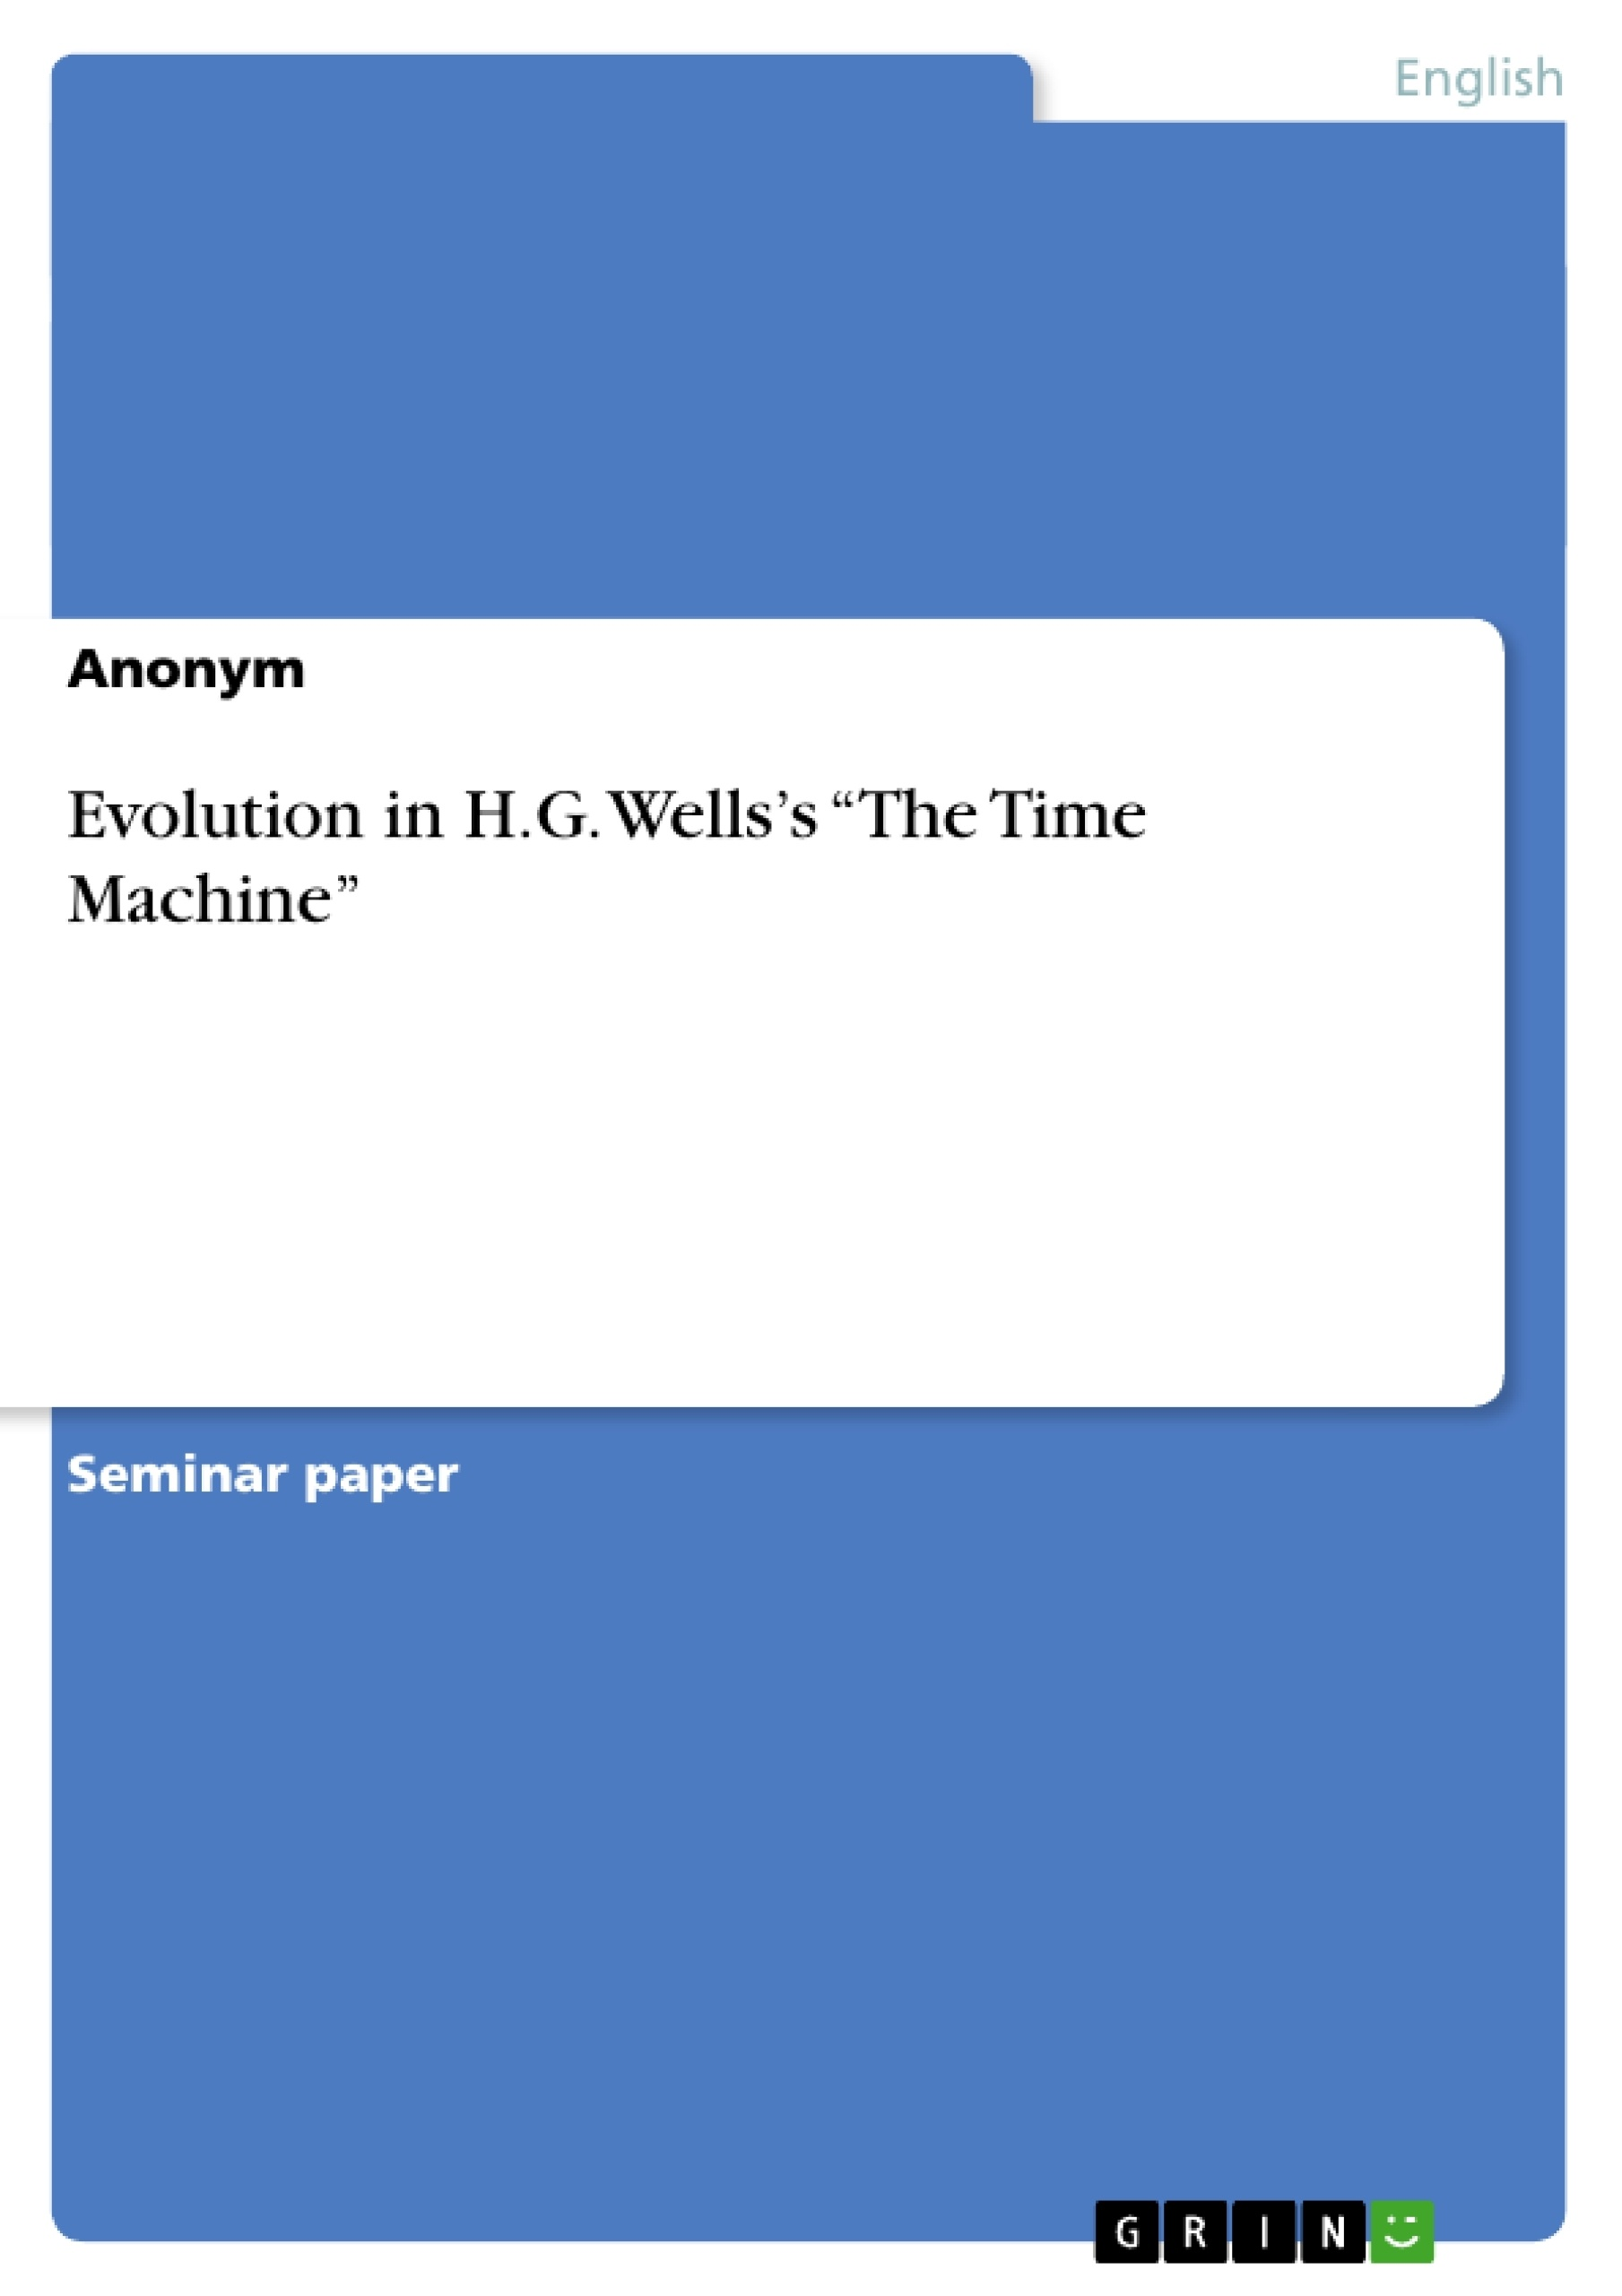 evolution in h g wells s ldquo the time machine rdquo publish your evolution in h g wells s ldquothe time machinerdquo publish your master s thesis bachelor s thesis essay or term paper